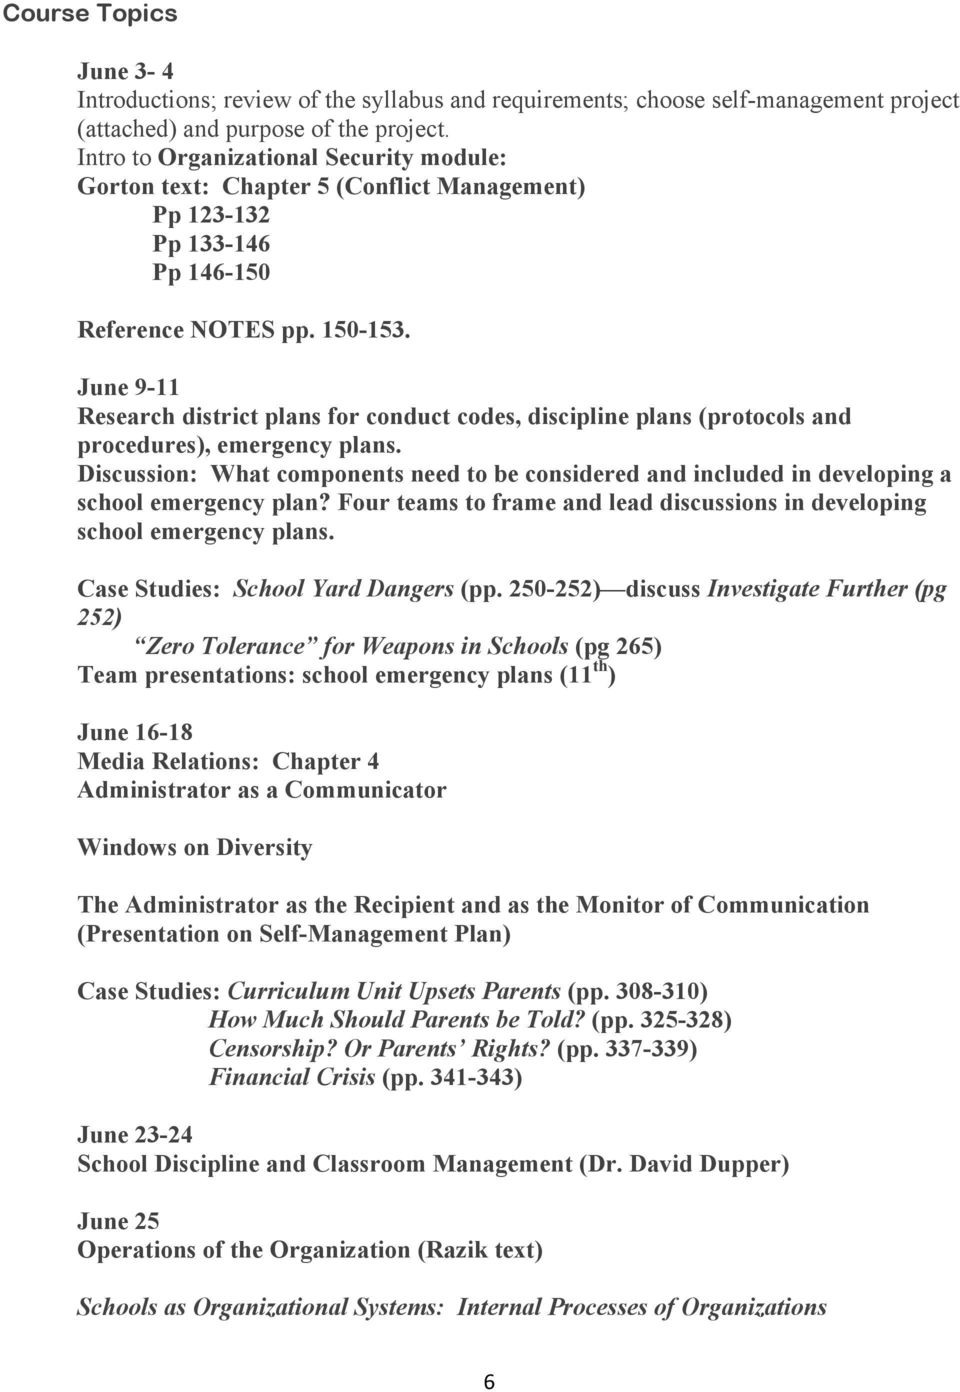 June 9-11 Research district plans for conduct codes, discipline plans (protocols and procedures), emergency plans.